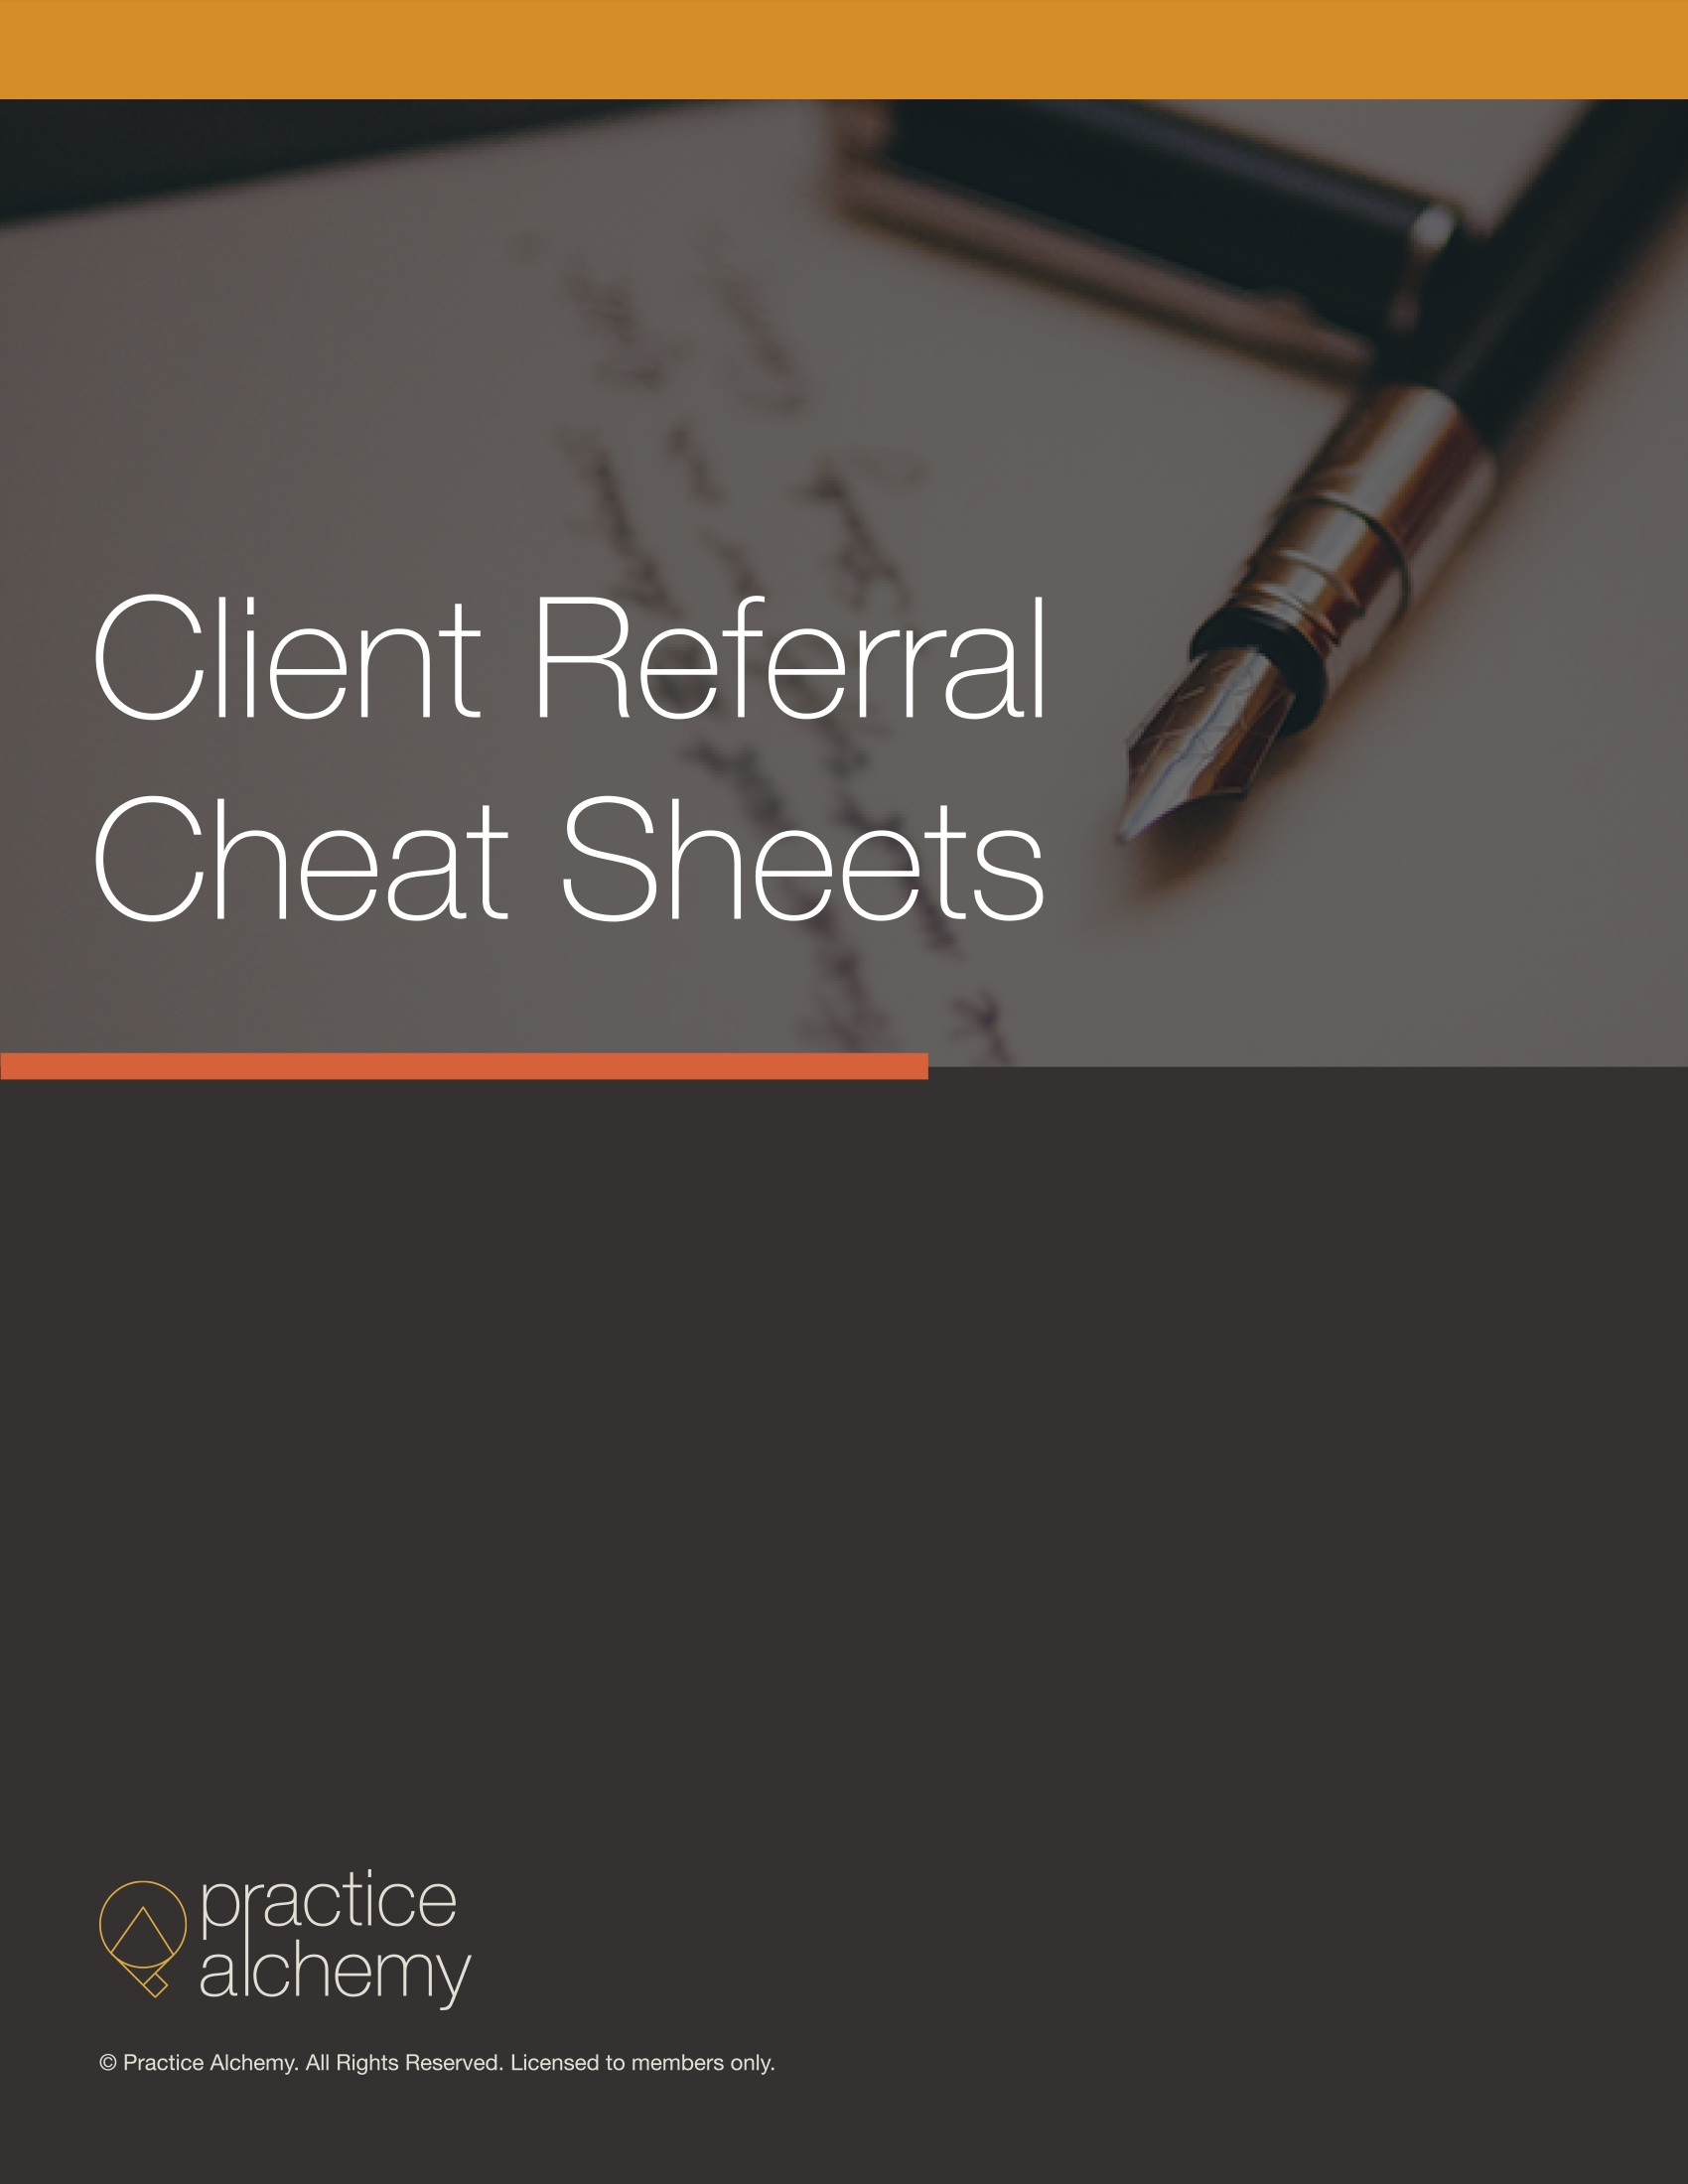 law-firm-client-referral-cheat-sheets-cover